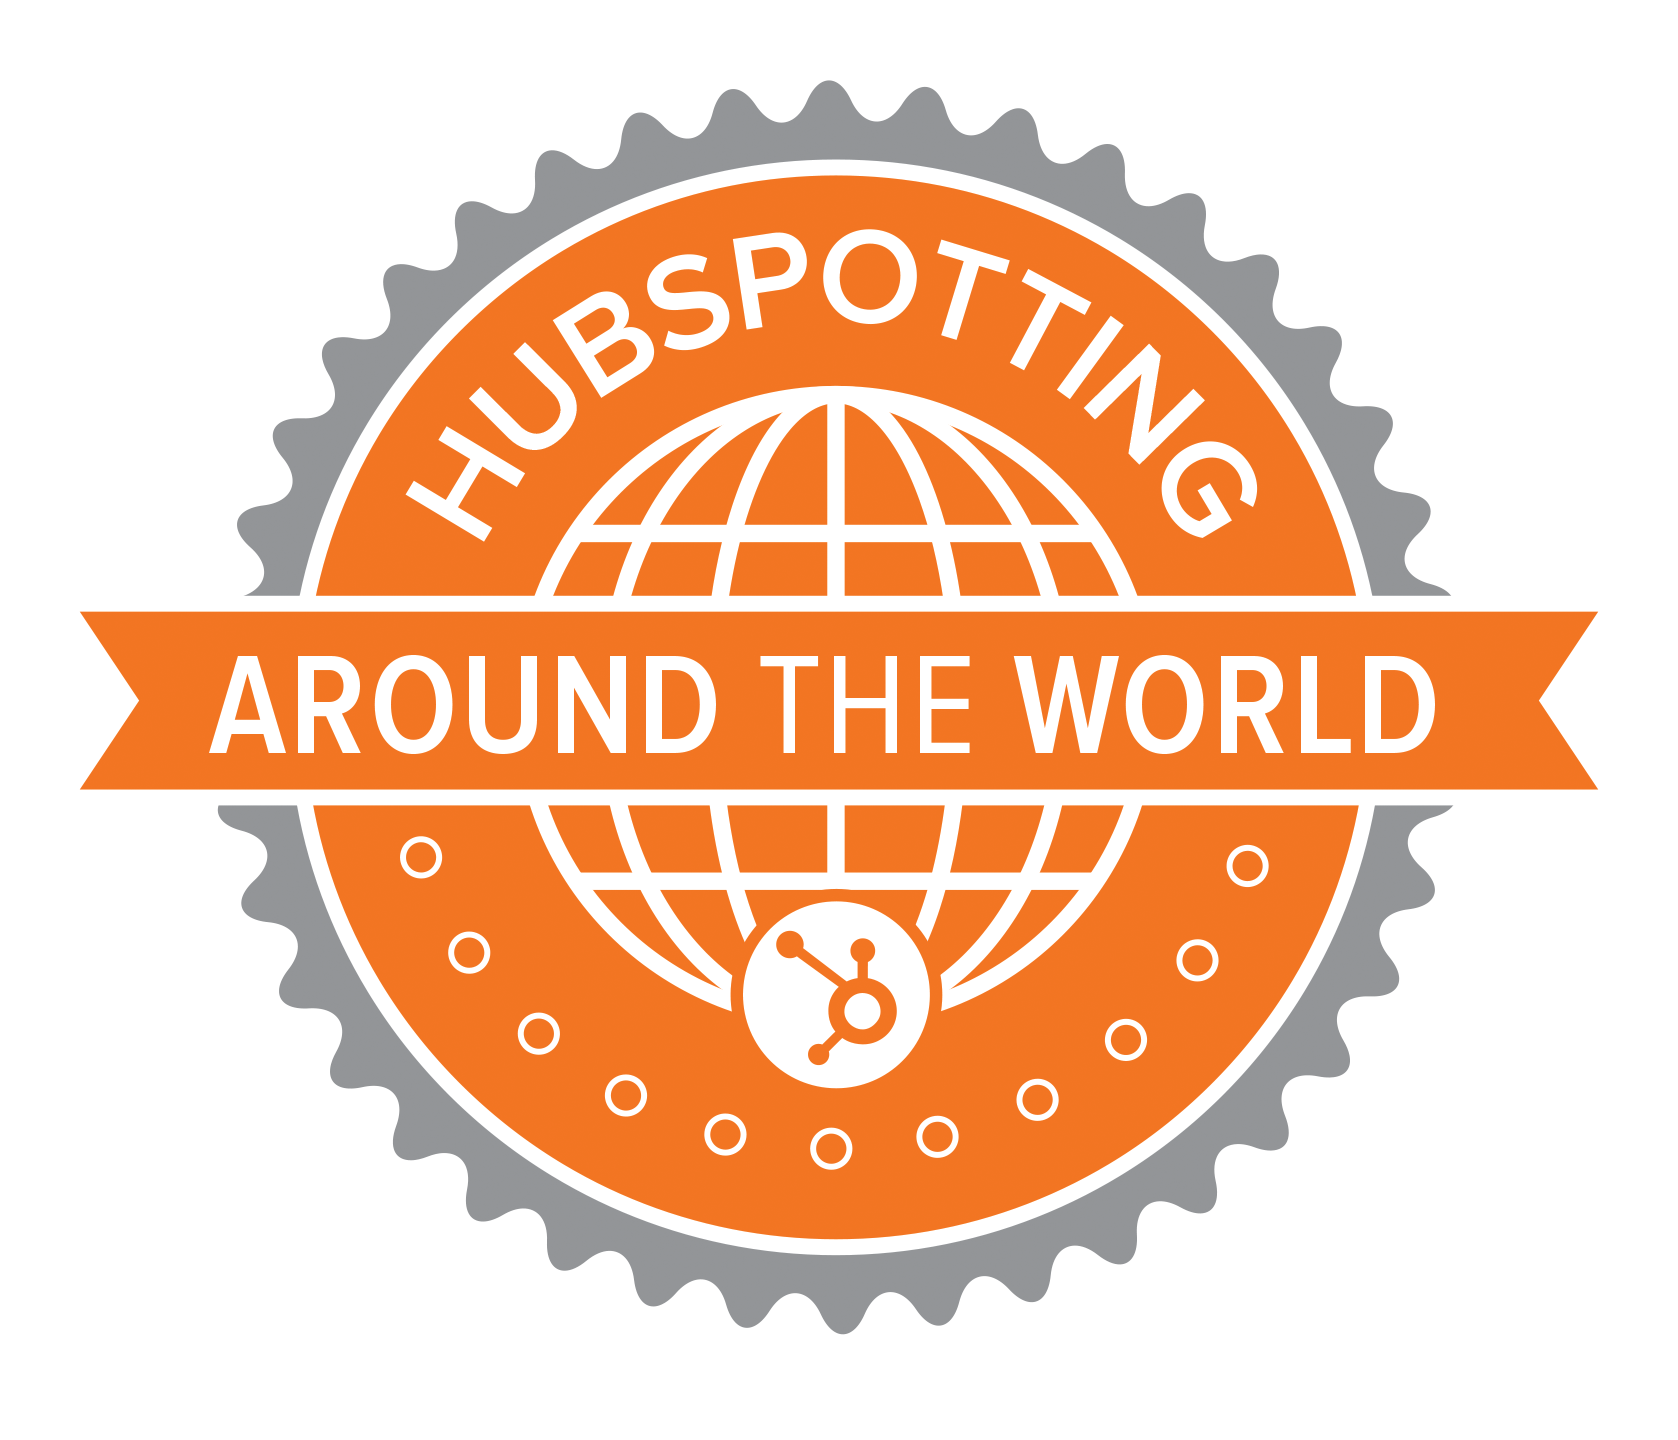 HubSpotting Around the World Explores Inbound Marketing's Global Reach